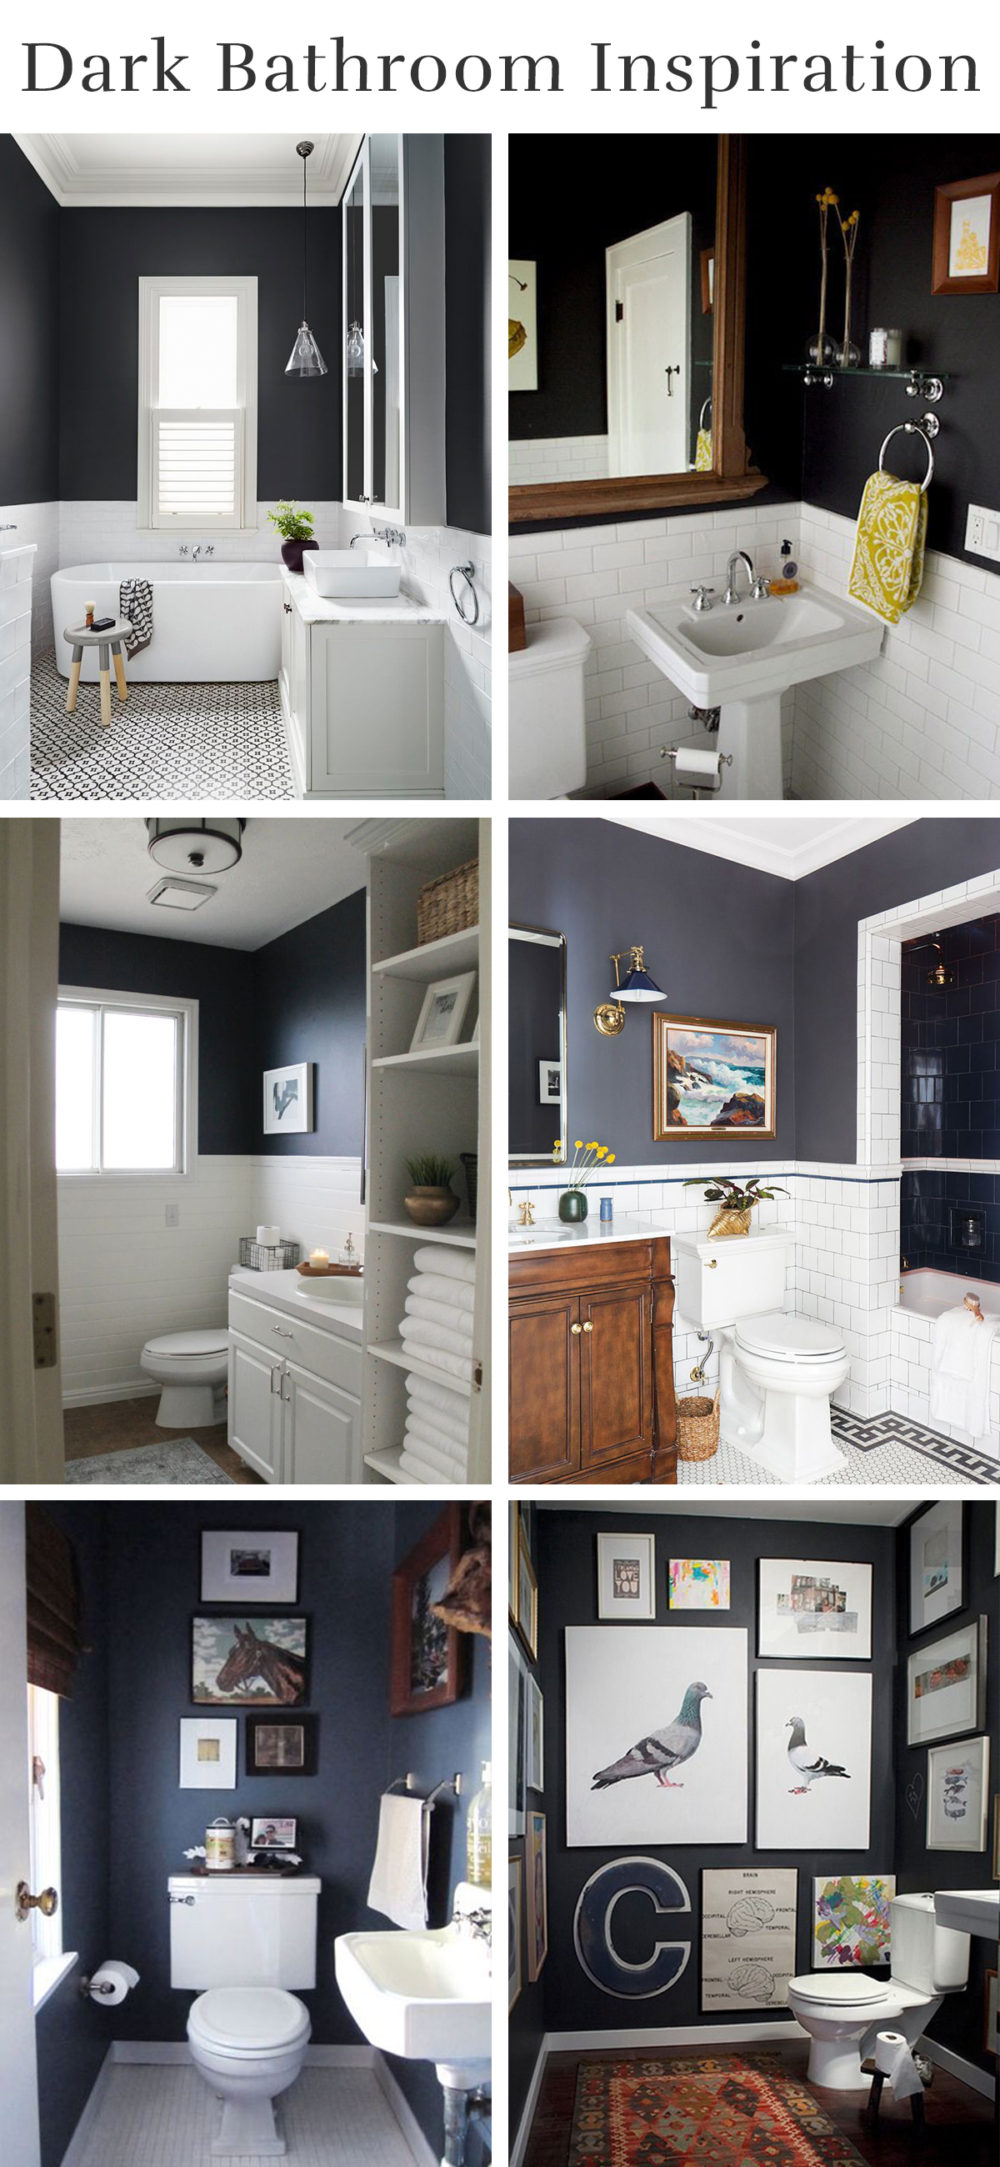 Dark Bathroom Inspiration | Melissa Lynch | melissalynch.com